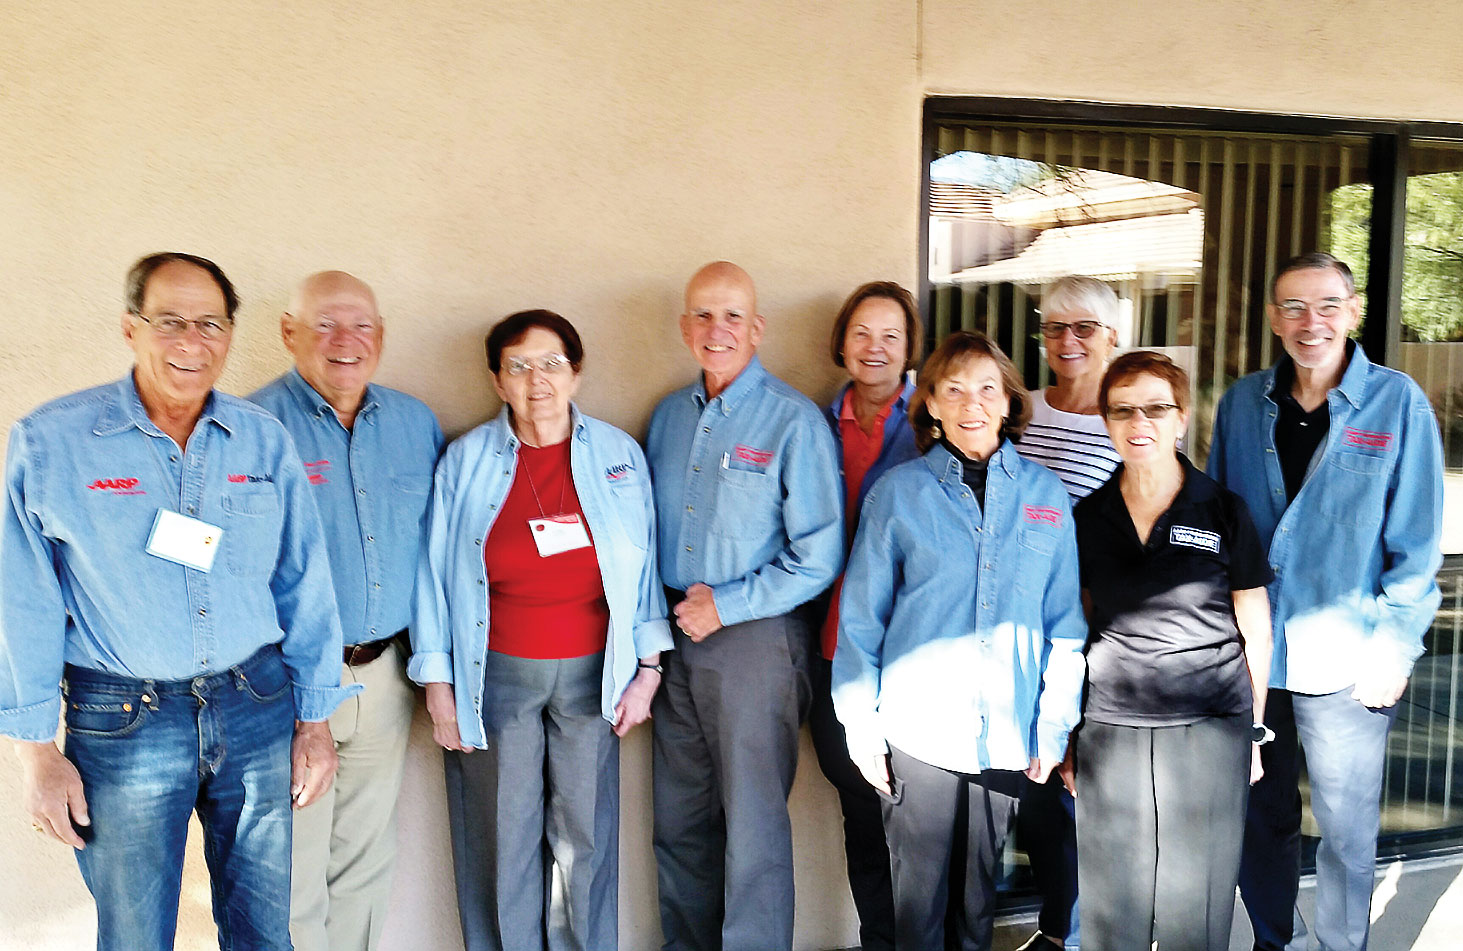 Quail Creek residents who volunteer their time at the AARP sites include: front row (from left) Gail Garrison and Peggy McGee; back row Al Miller, Craig Parsons, Lori Whitman, John Kozma, Diana Averill, Anne Benton and Tom Schlitt. The photo was taken by Jeff Smith.